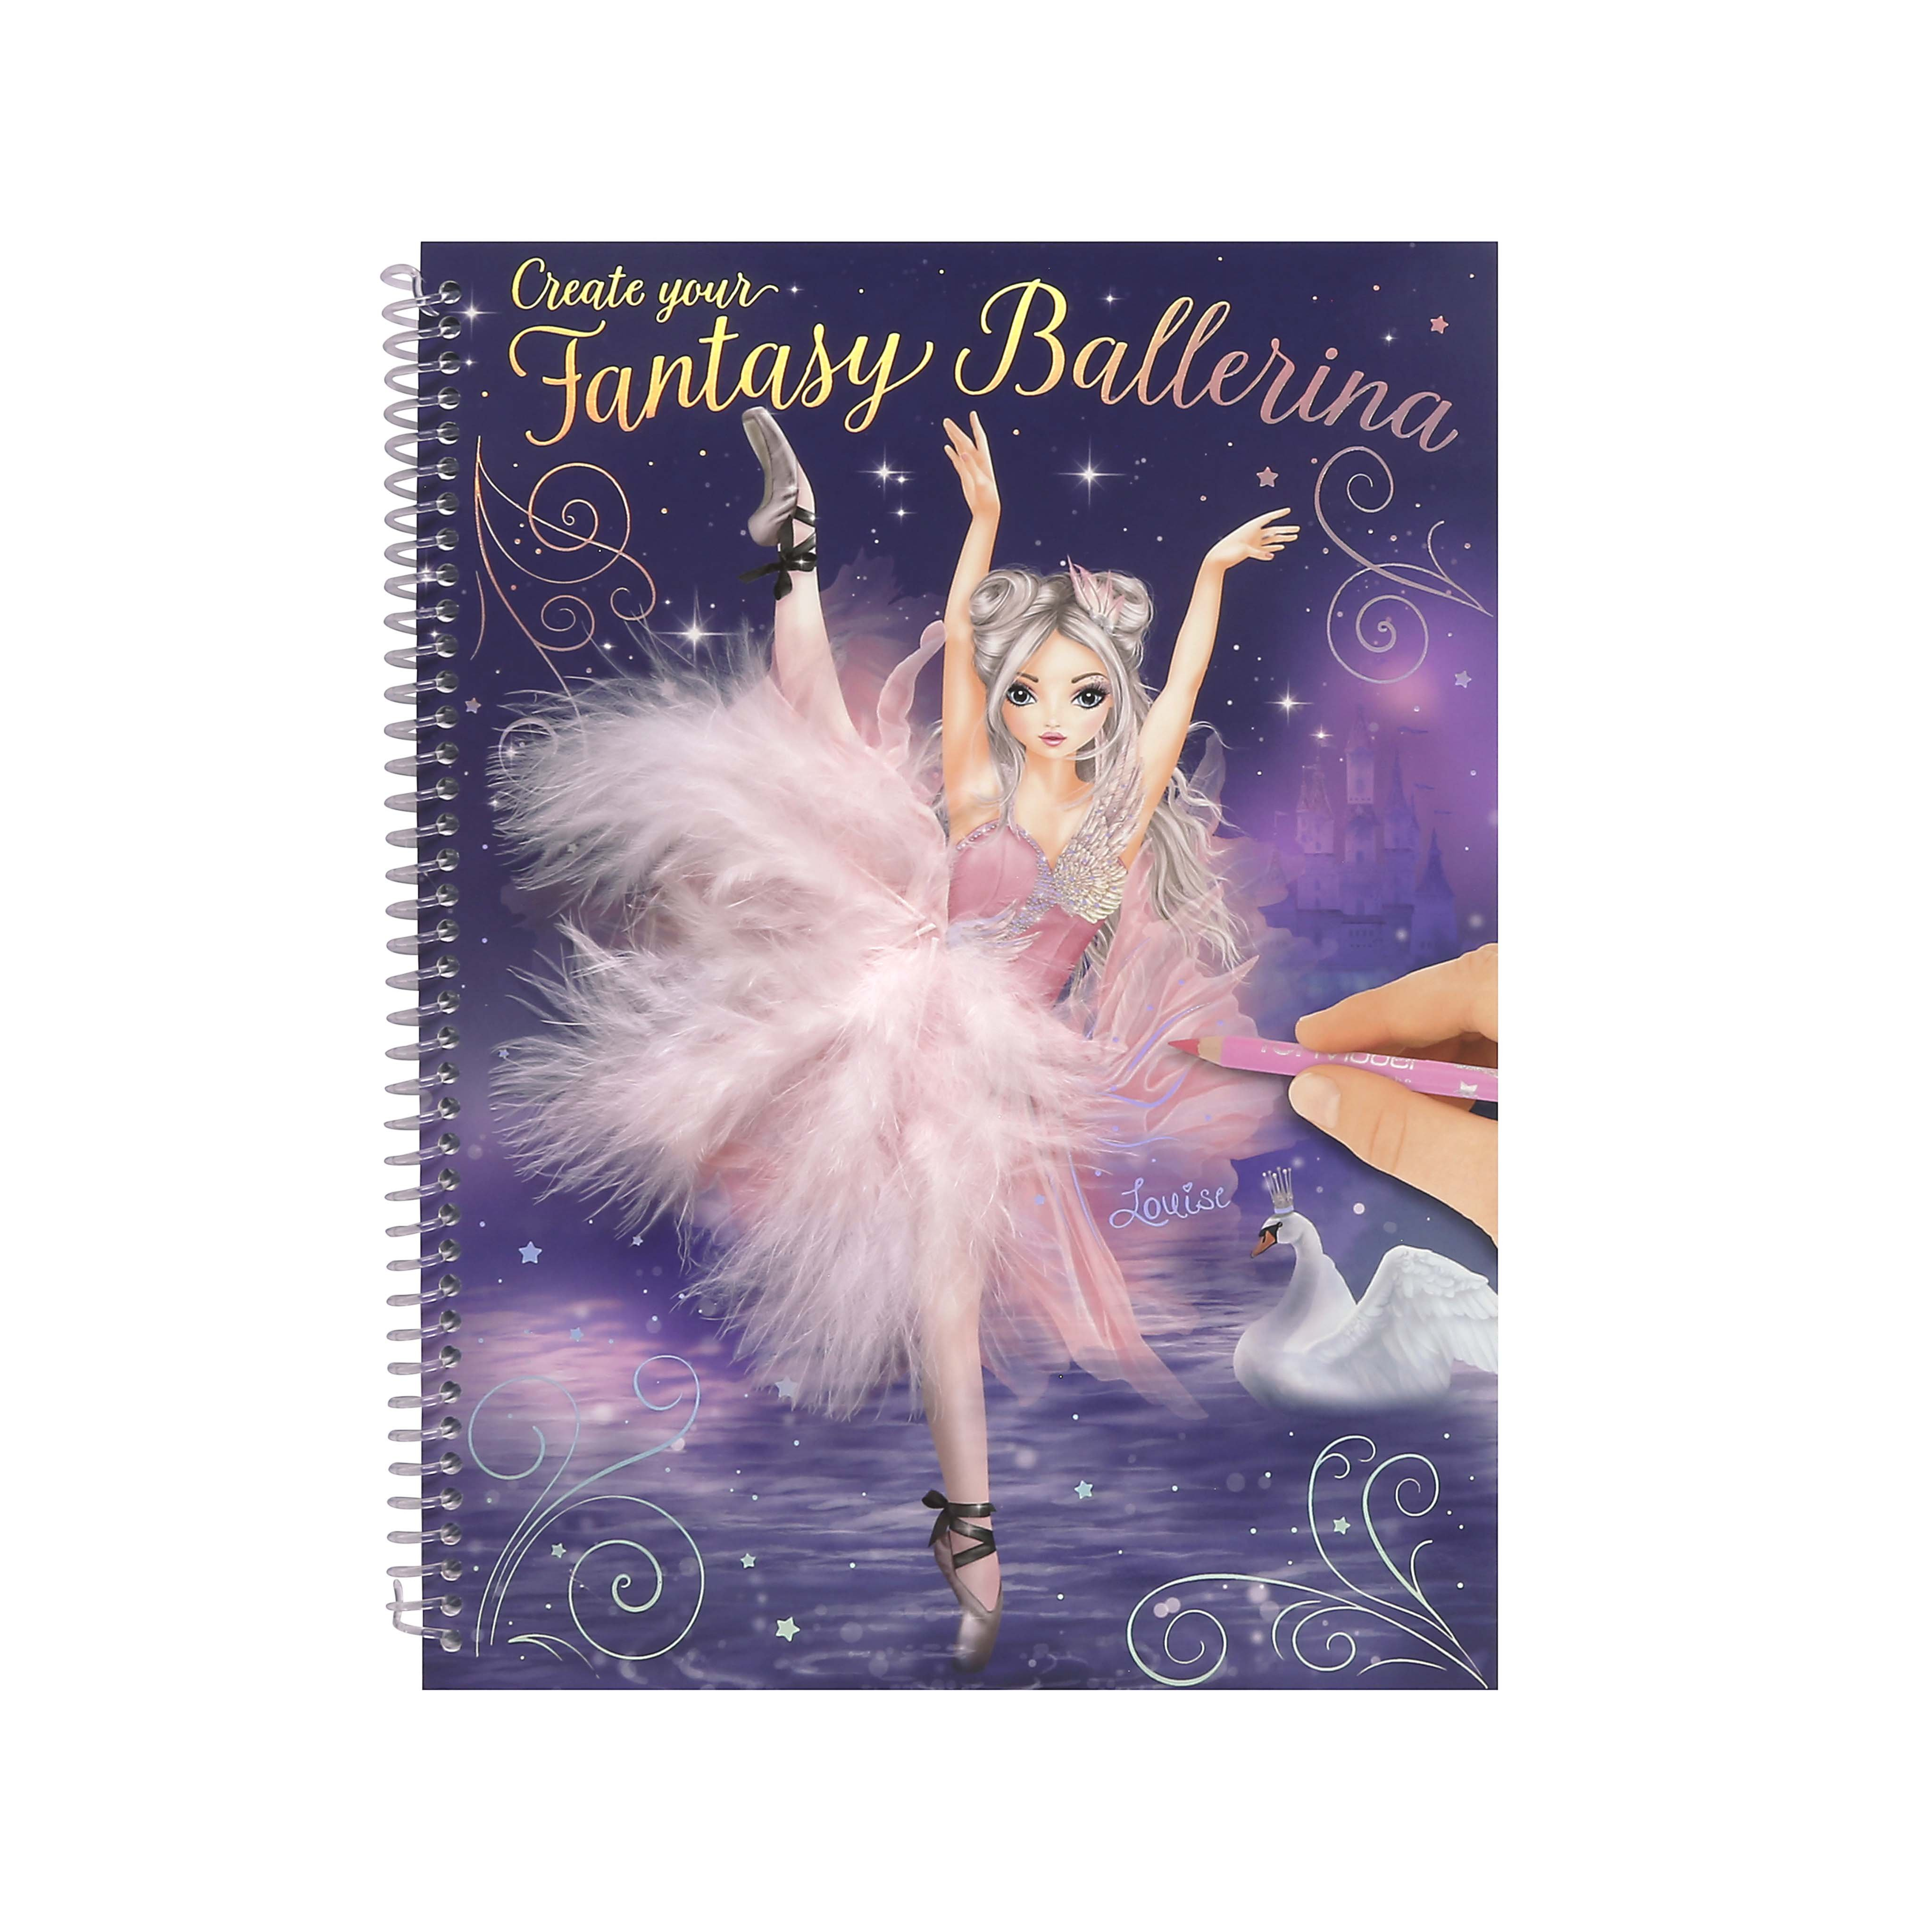 080b09bcd28f Create Your Fantasy Ballerina Book